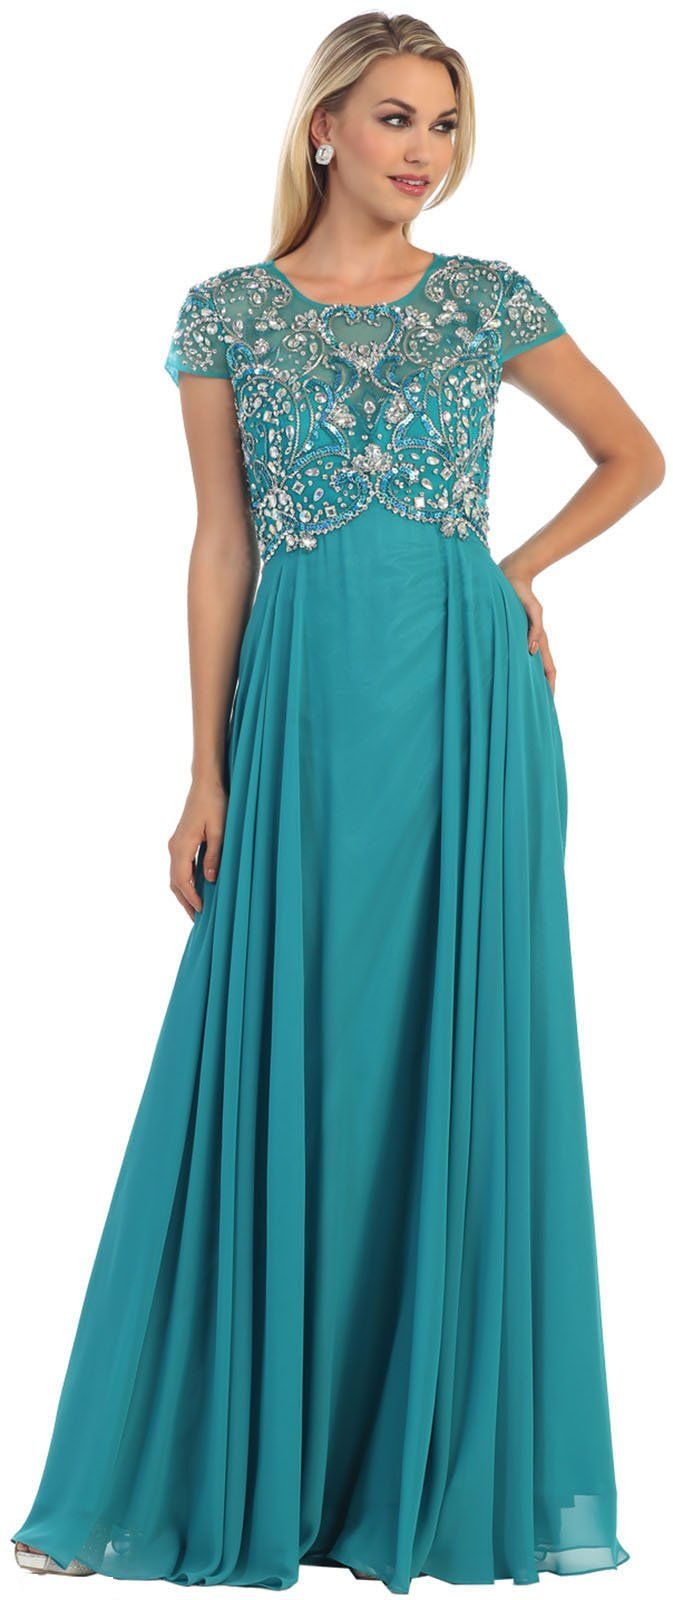 May Queen MQ1100 Formal Mother Of The Bride Evening Dress (L, Teal ...